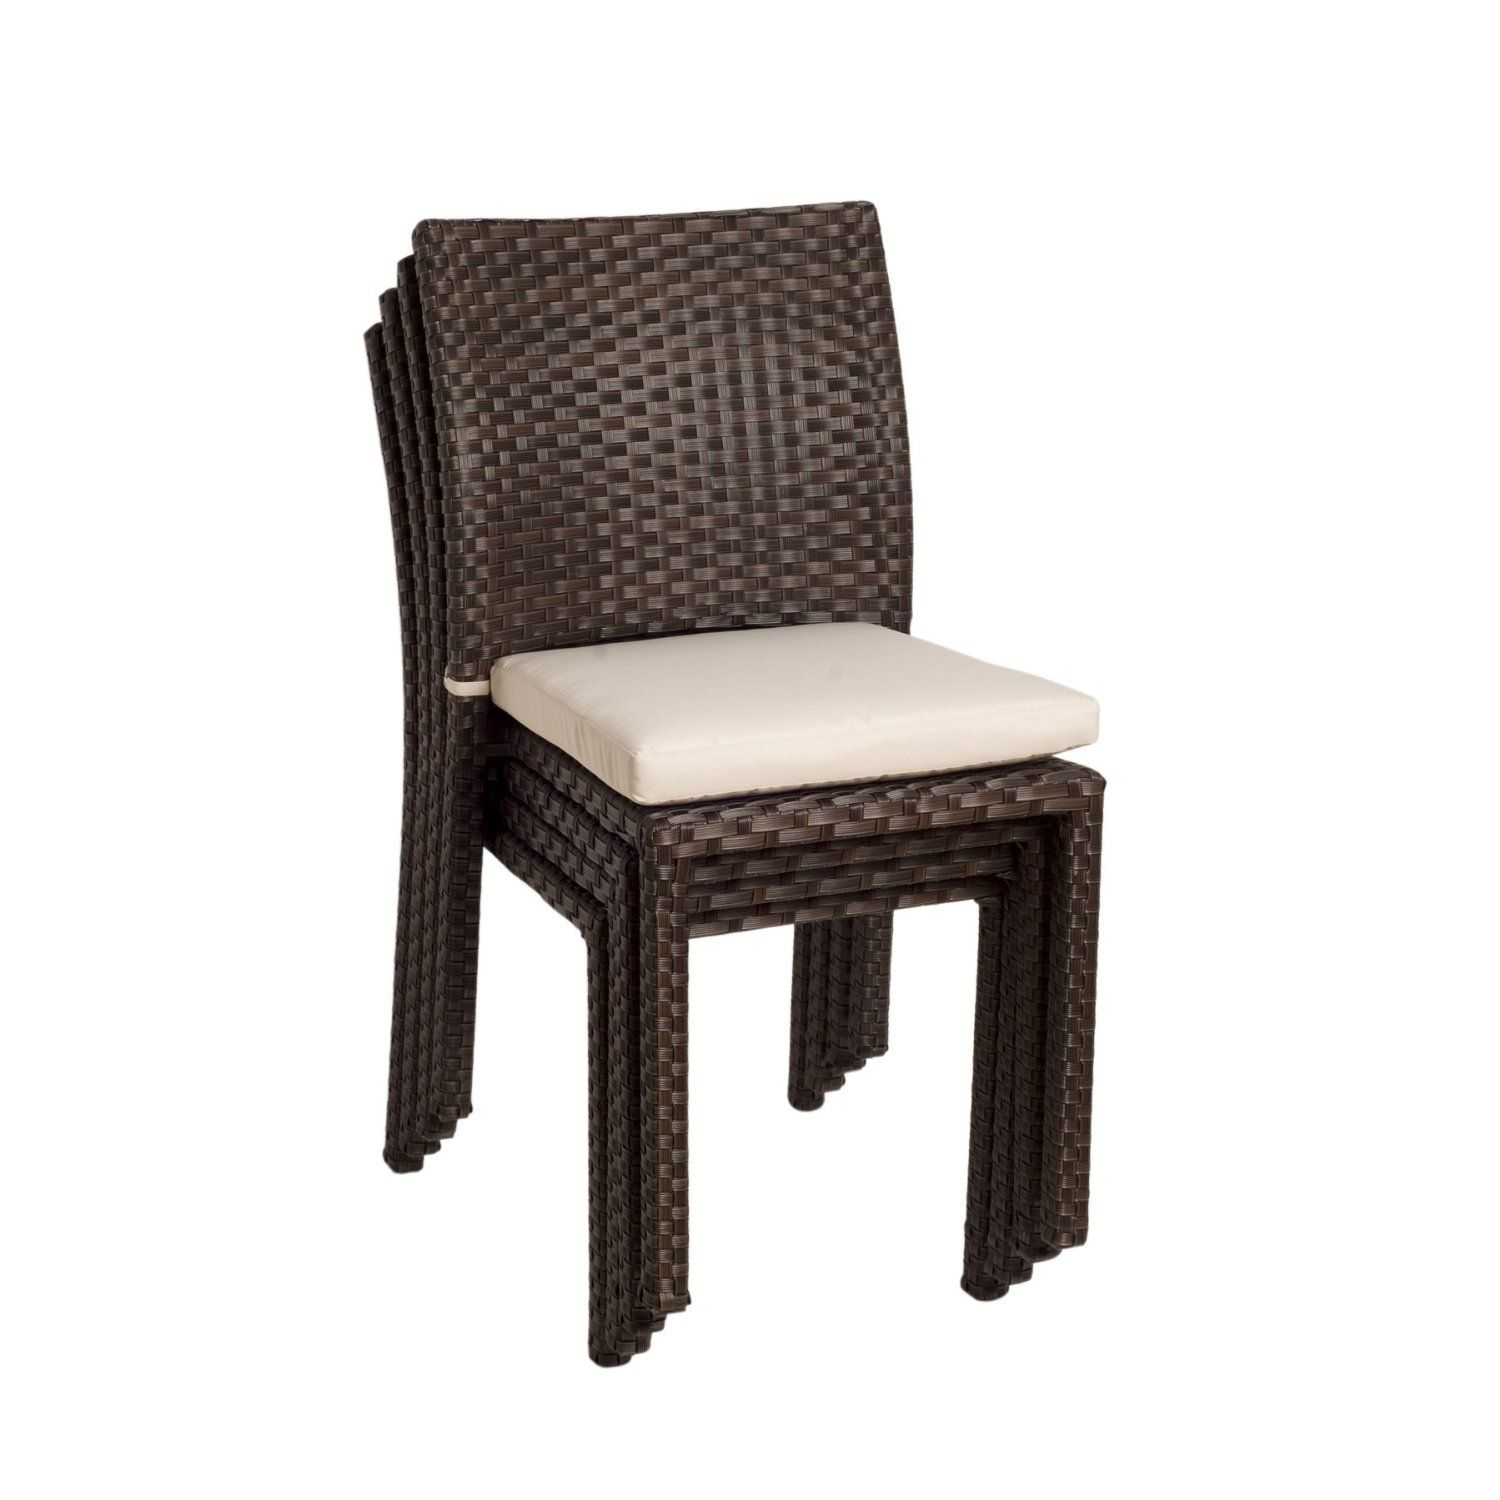 amazoncom atlantic liberty stackable chairs 4 pack patio lawn